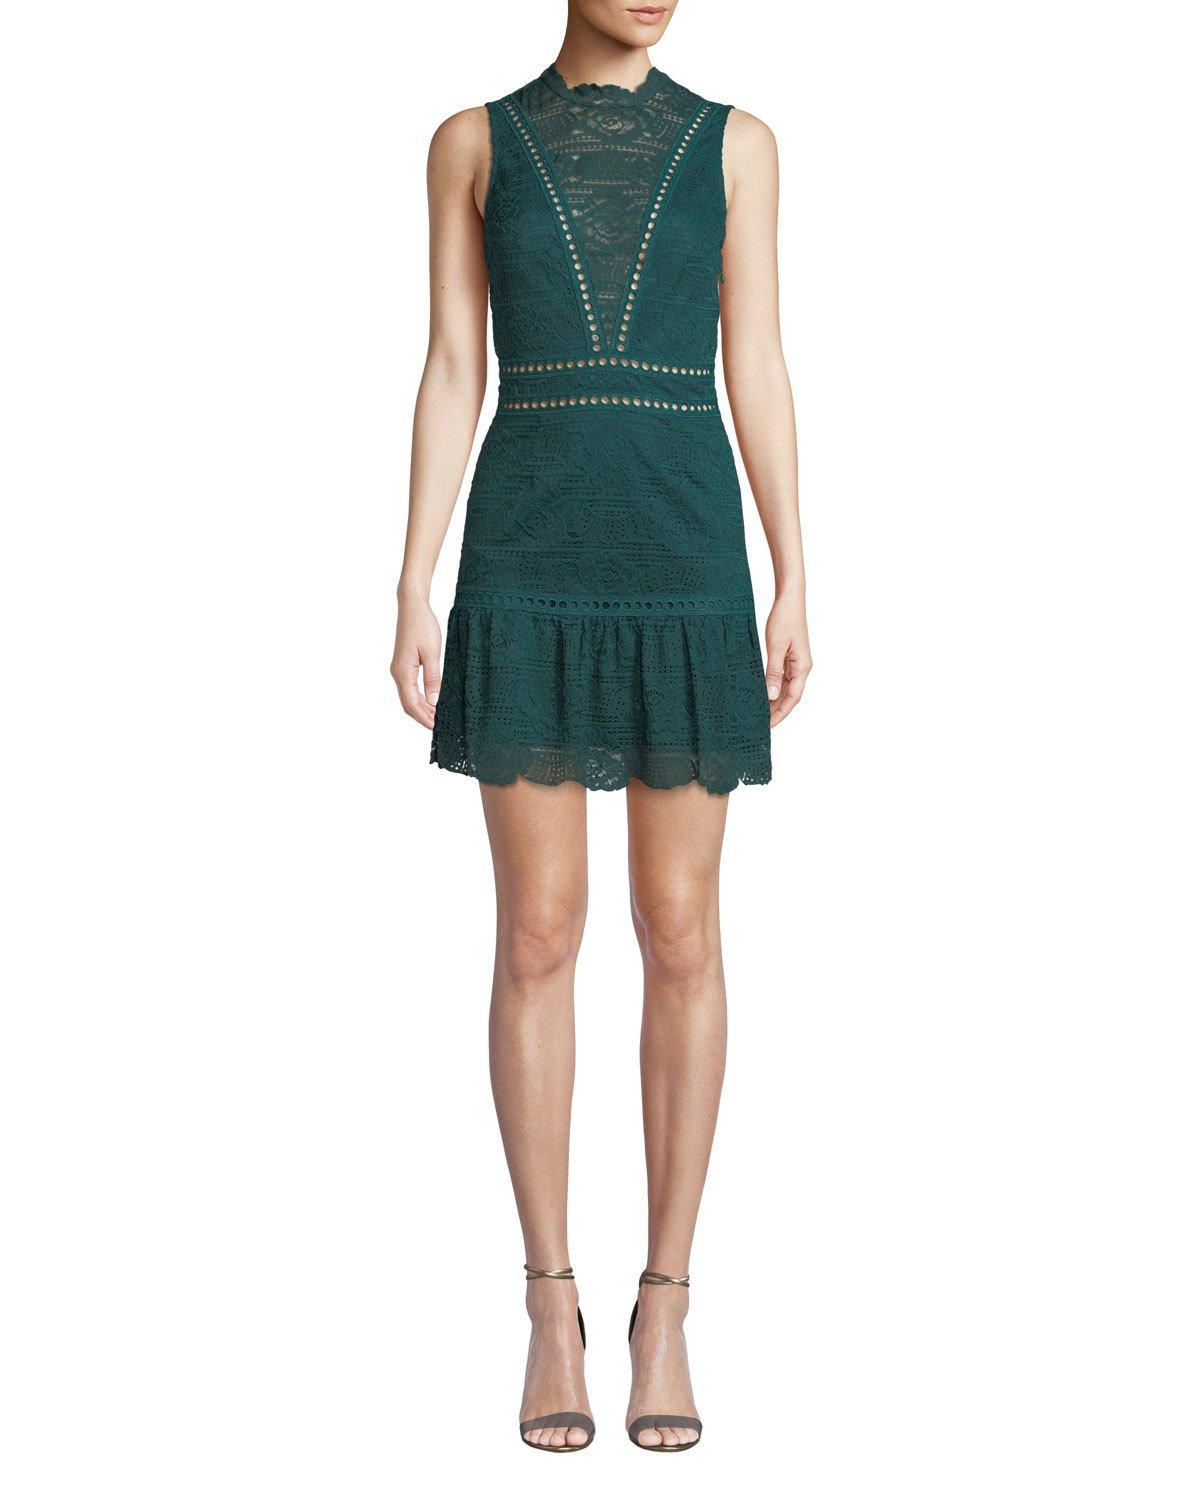 Saylor Rosemary Lace Open-back Mini Dress In Emerald